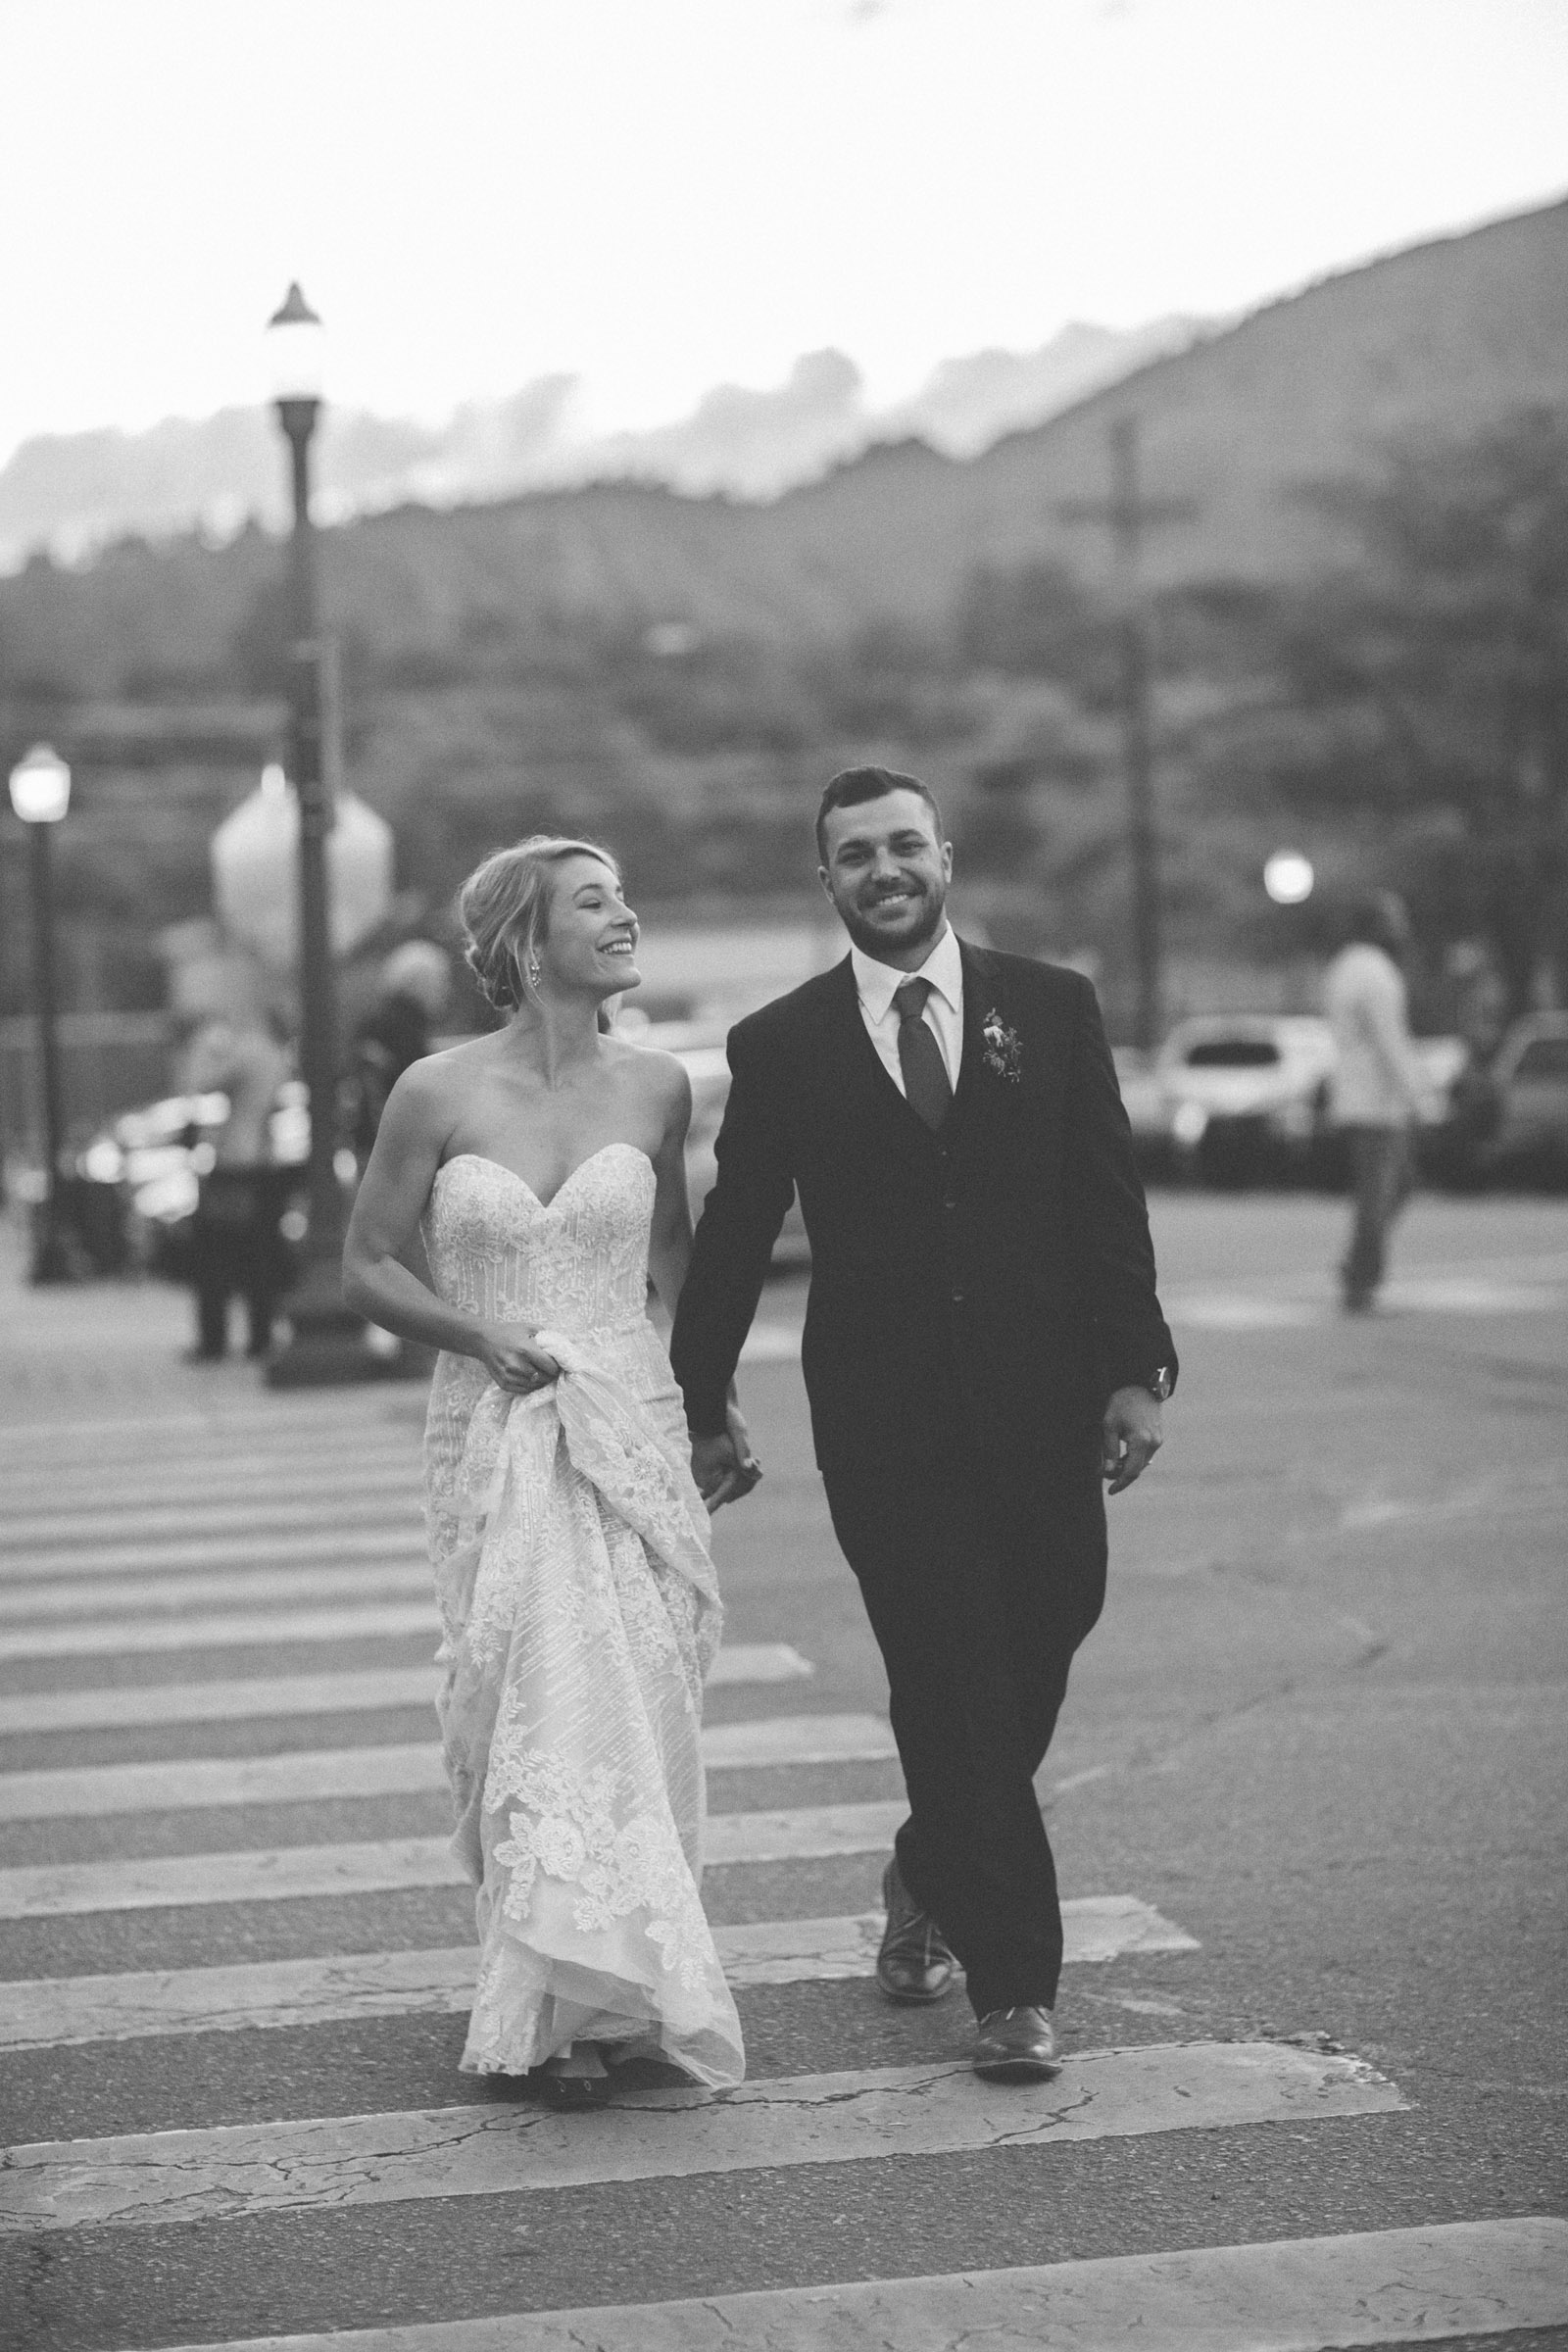 beautiful bride and groom photojournalist portraits at elopement wedding in durango colorado downtown